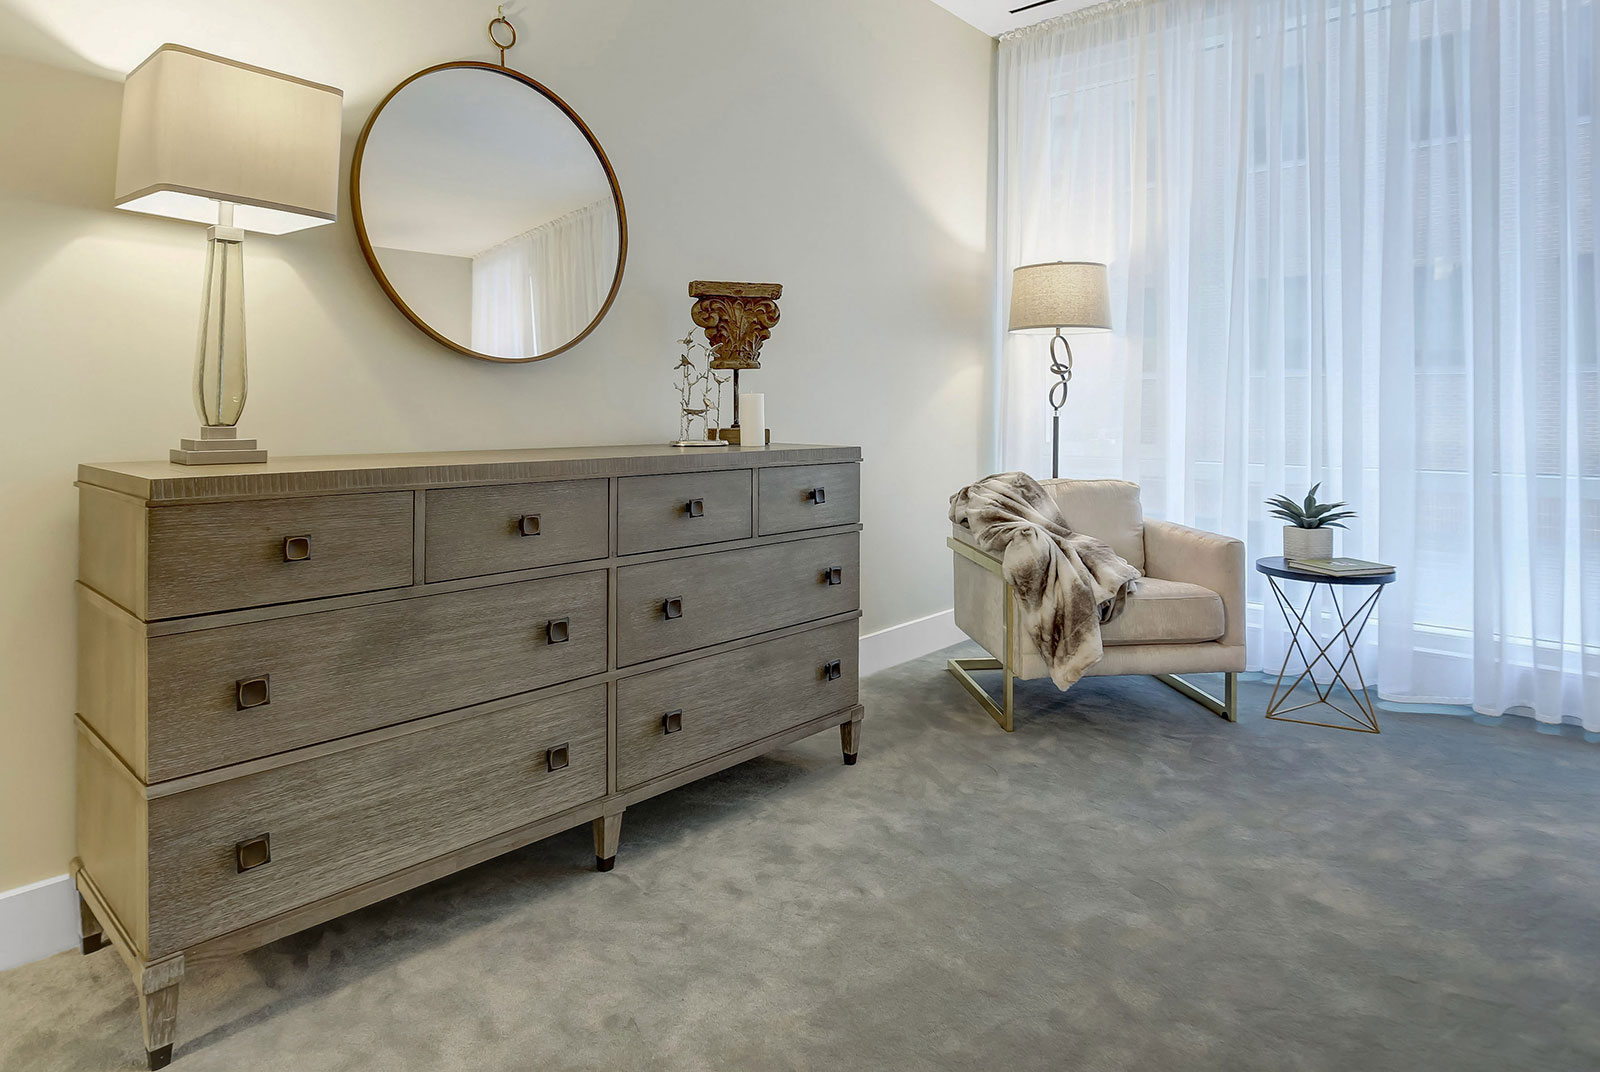 model-staging-walnut-pa-bedroom-interior-design-dreser-and-mirror